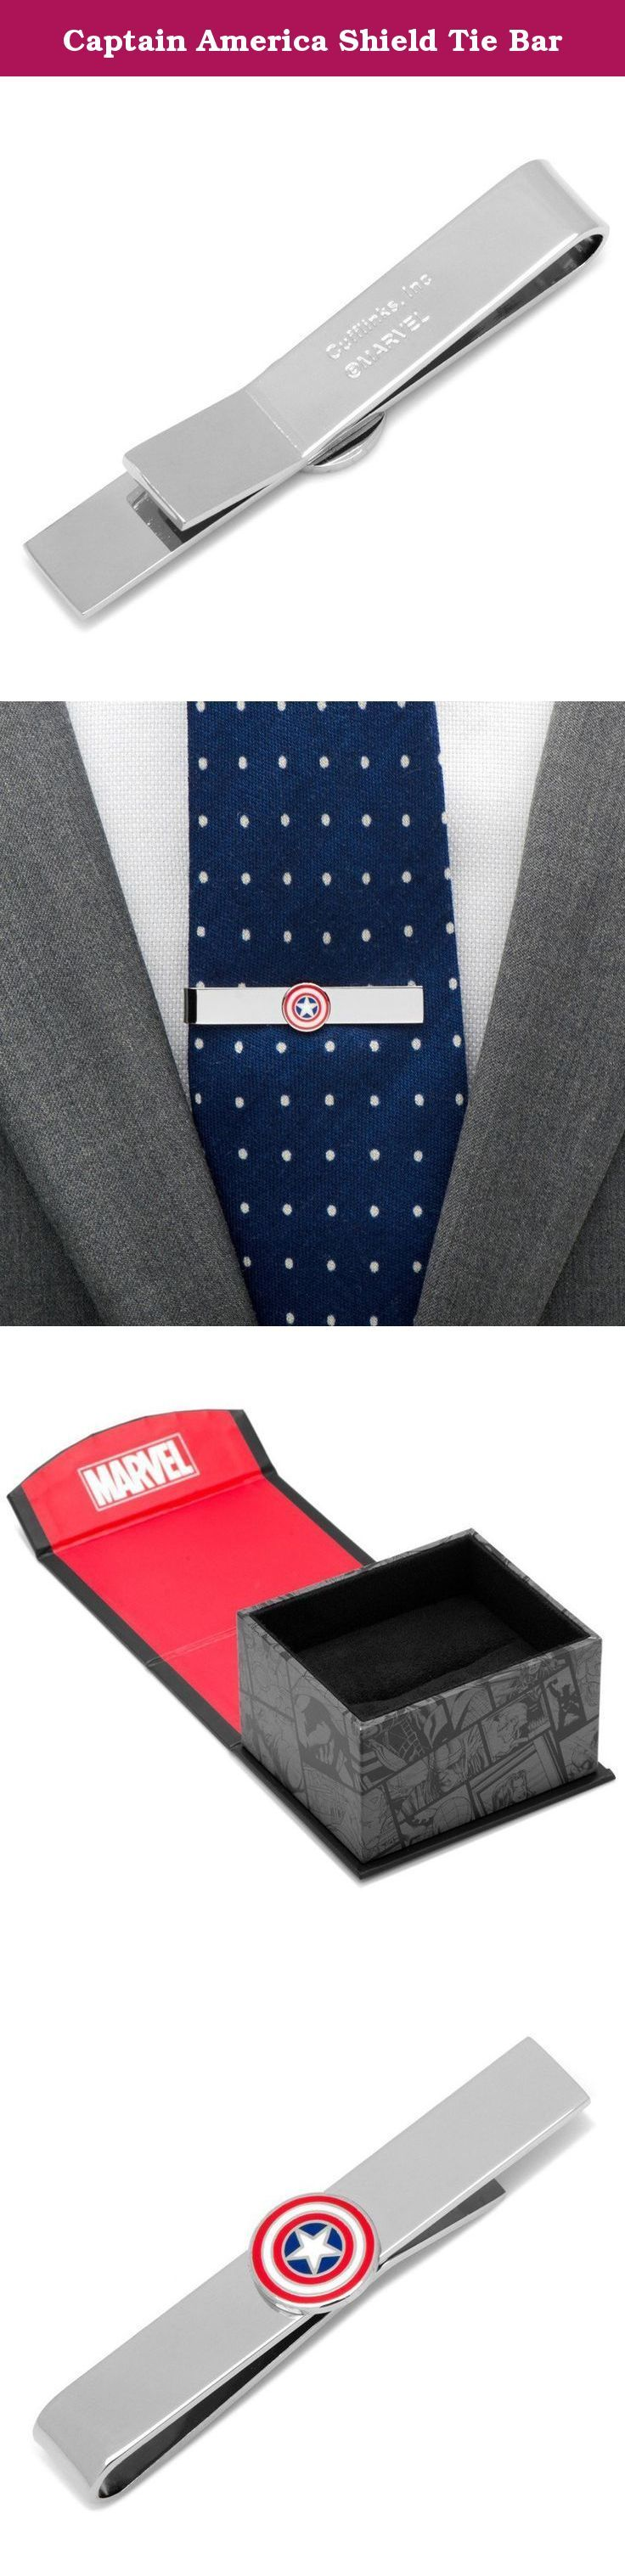 """Captain America Shield Tie Bar. Captain America Shield Tie Bar Approximately 2"""" x 1/4"""" Plated base metal with enamel Officially licensed by Marvel Fixed logo backing ."""